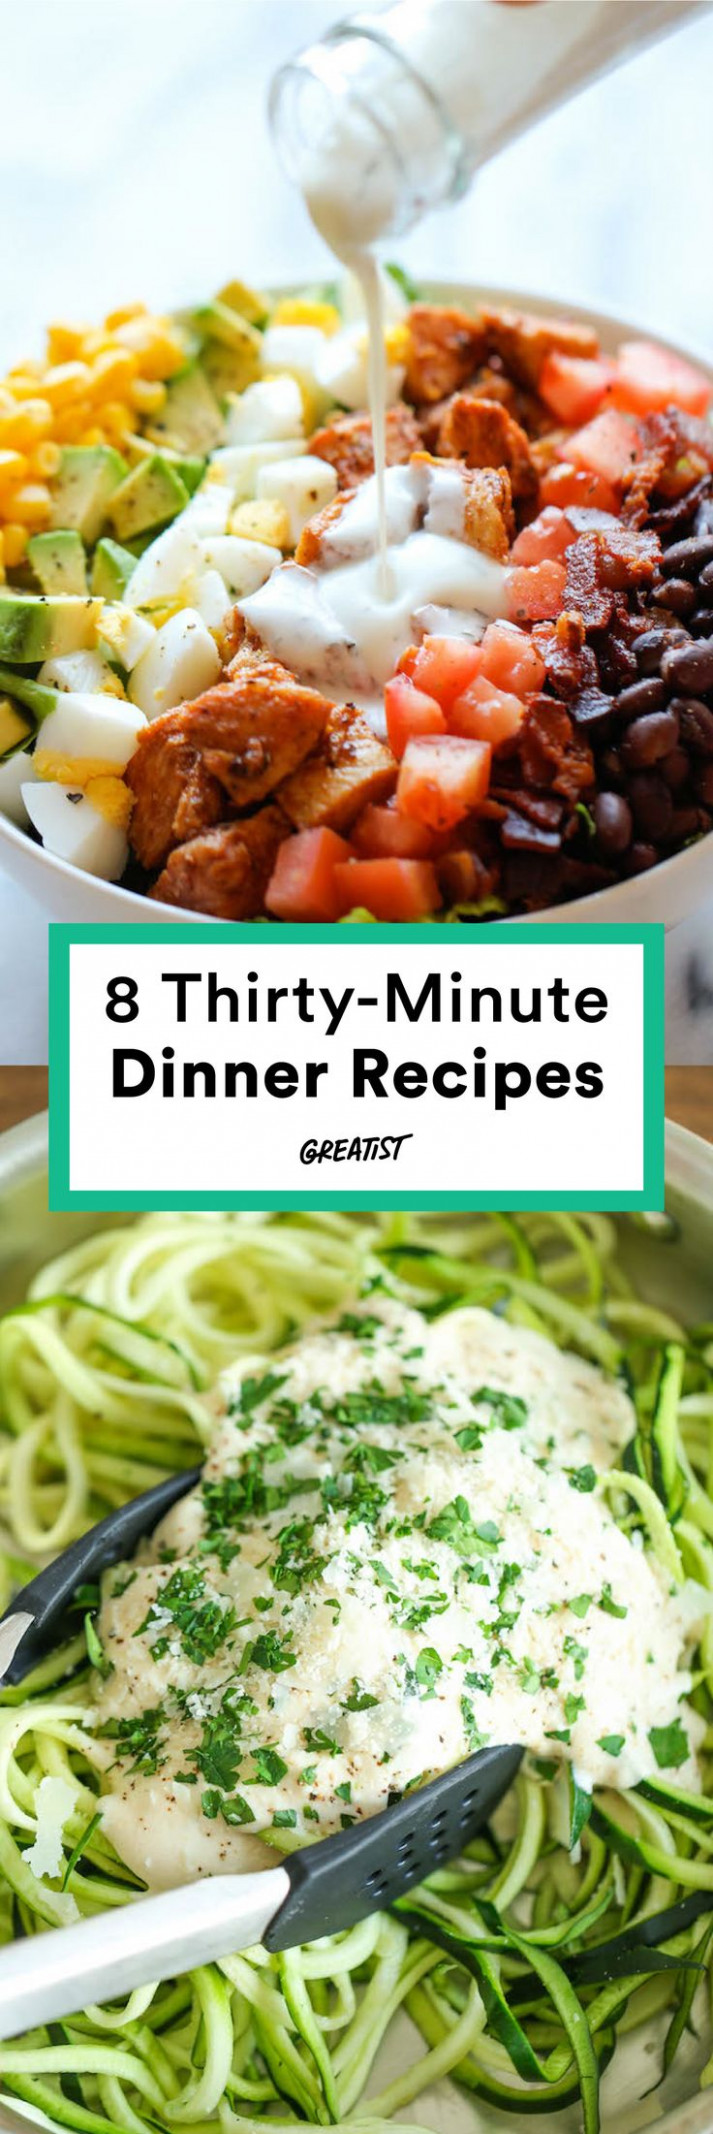 30 Minute Dinners You'll Want To Make This Week | Healthy …